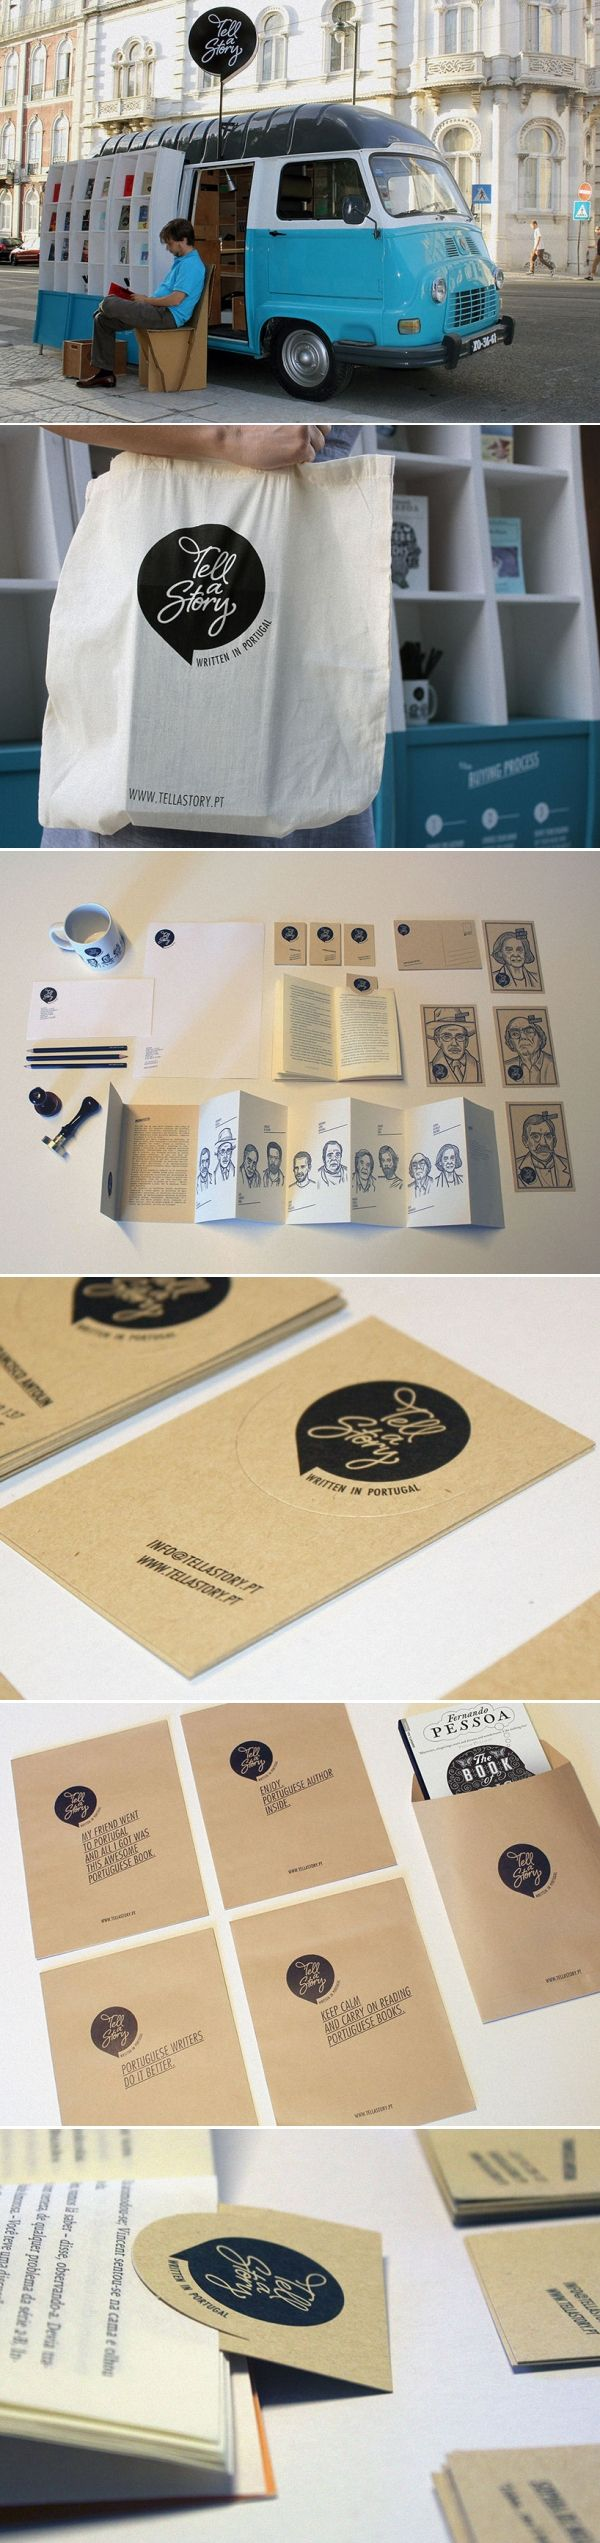 tell a story: the traveling book store by MSTF partners